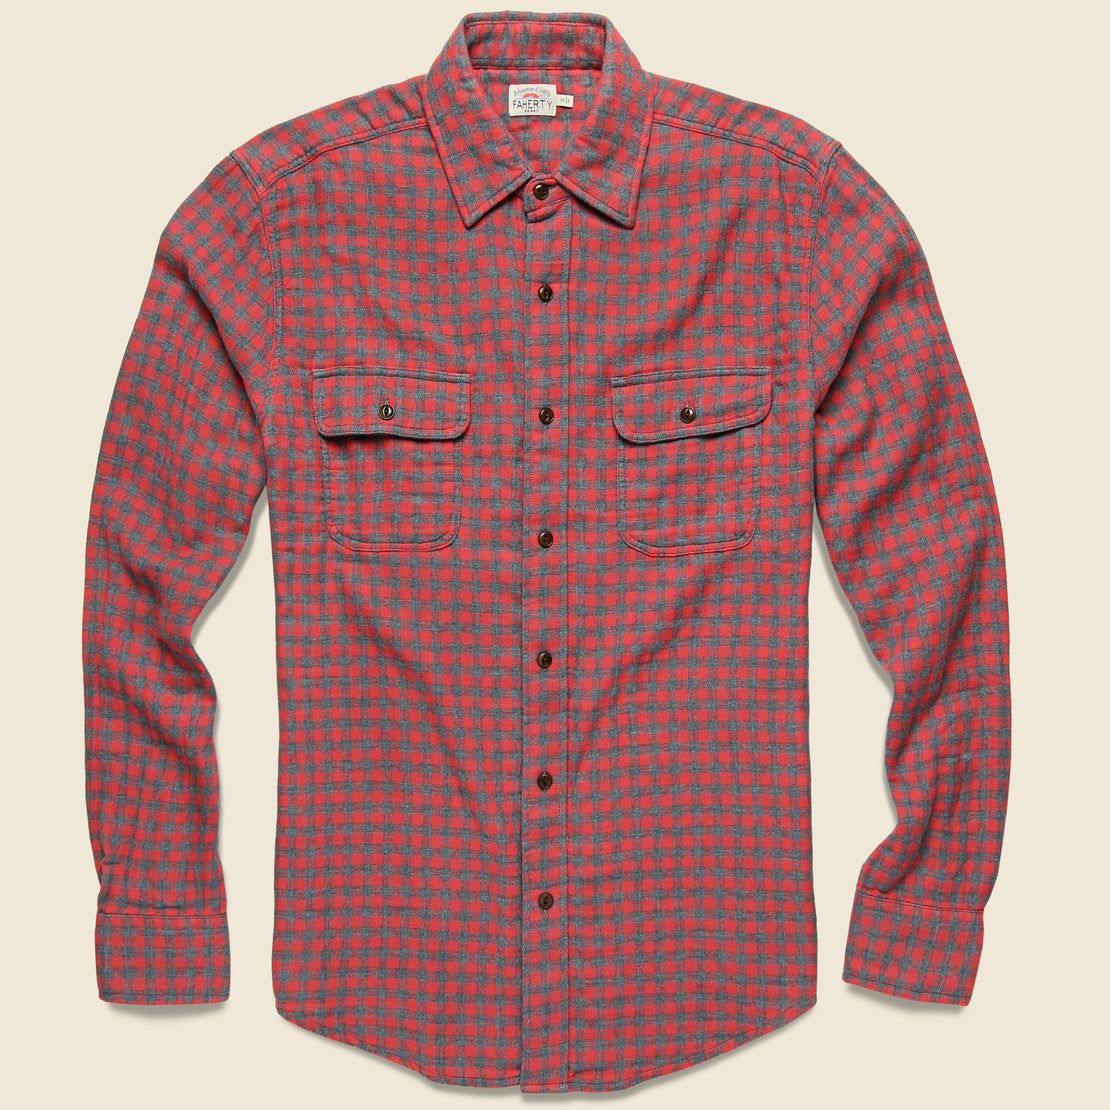 Faherty Doublecloth Belmar Shirt - Red Charcoal Buffalo